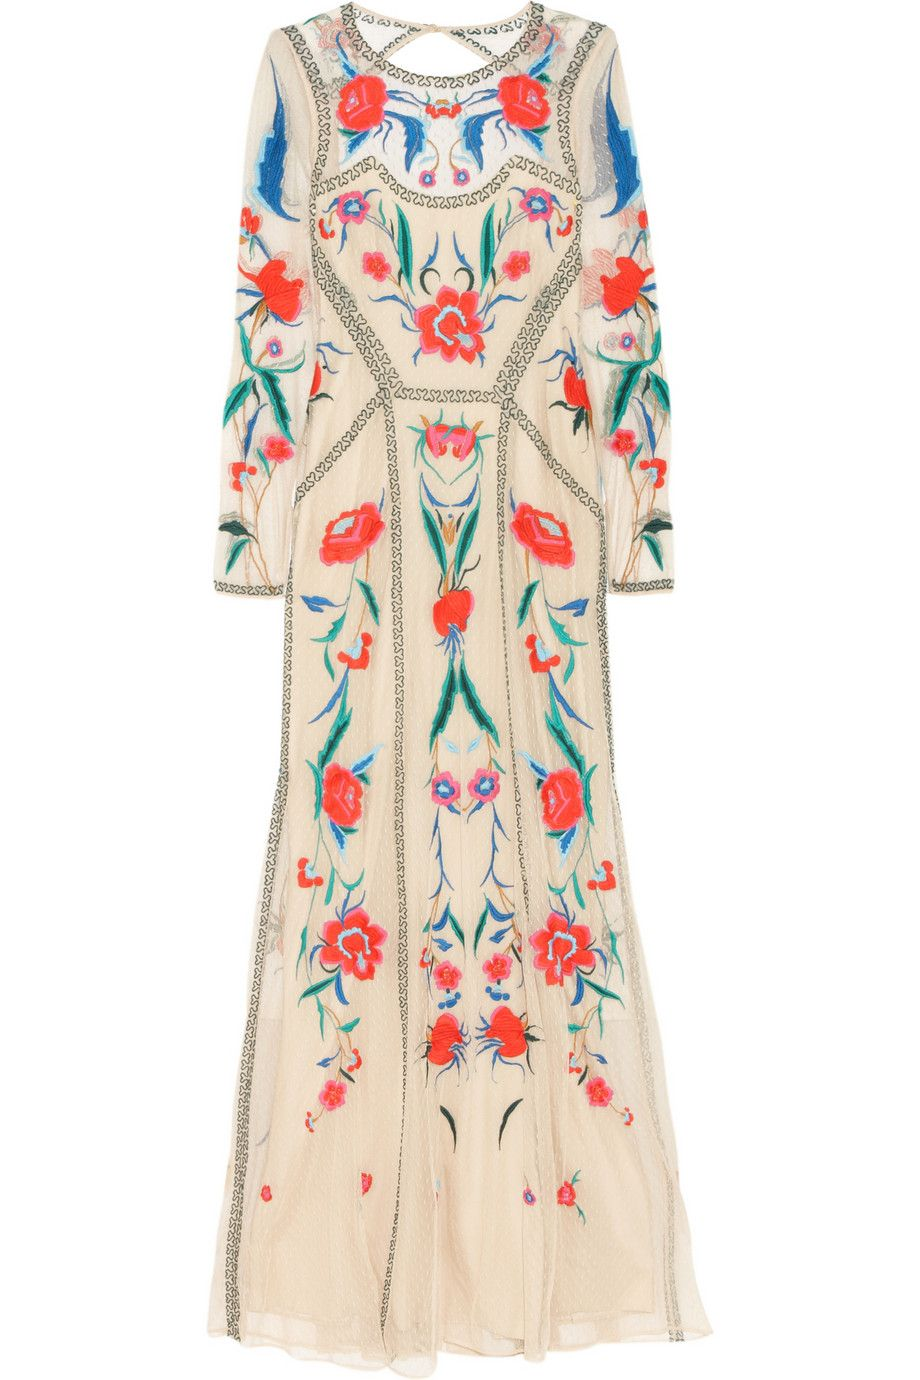 Temperley London | Eliah embroidered tulle dress